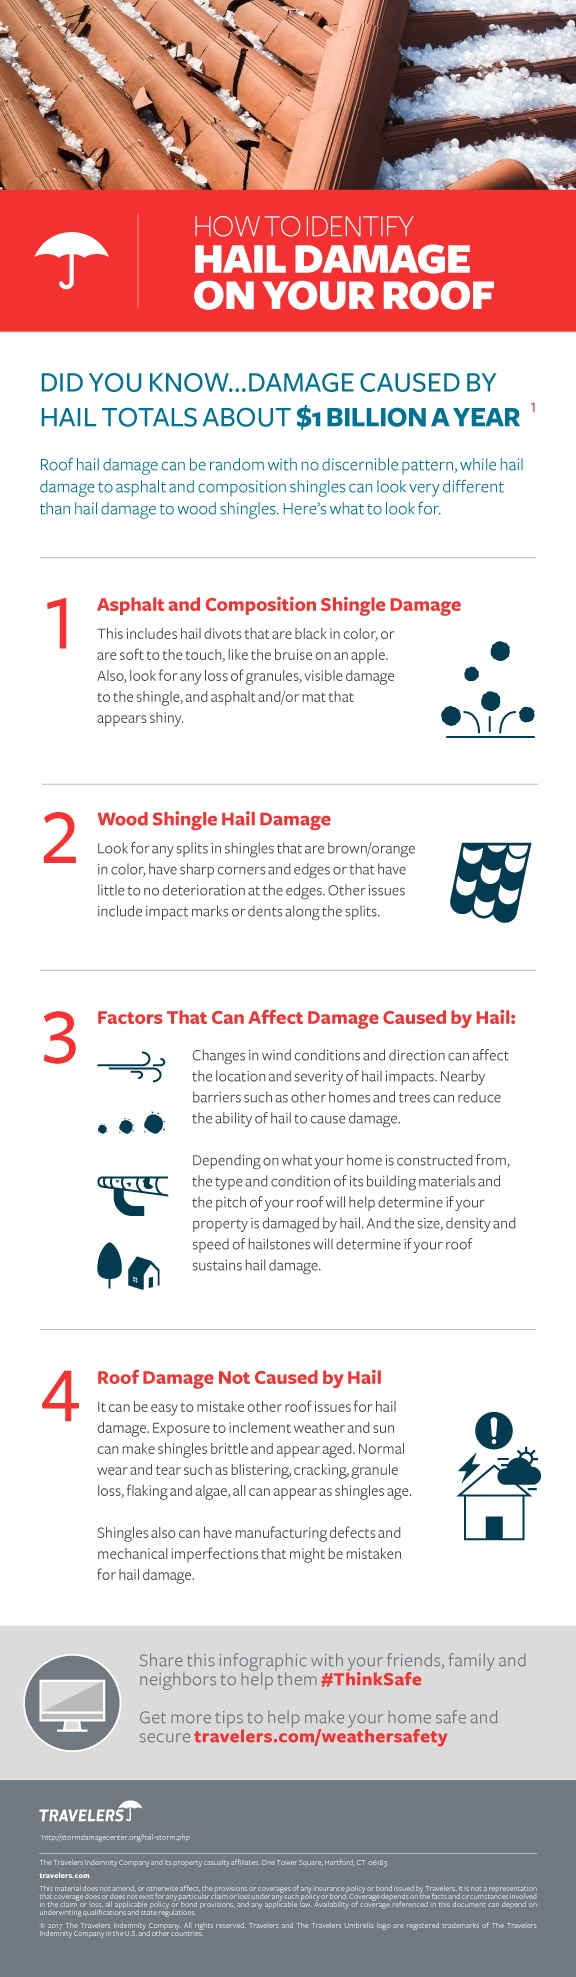 Identifying hail damage to your roof infographic